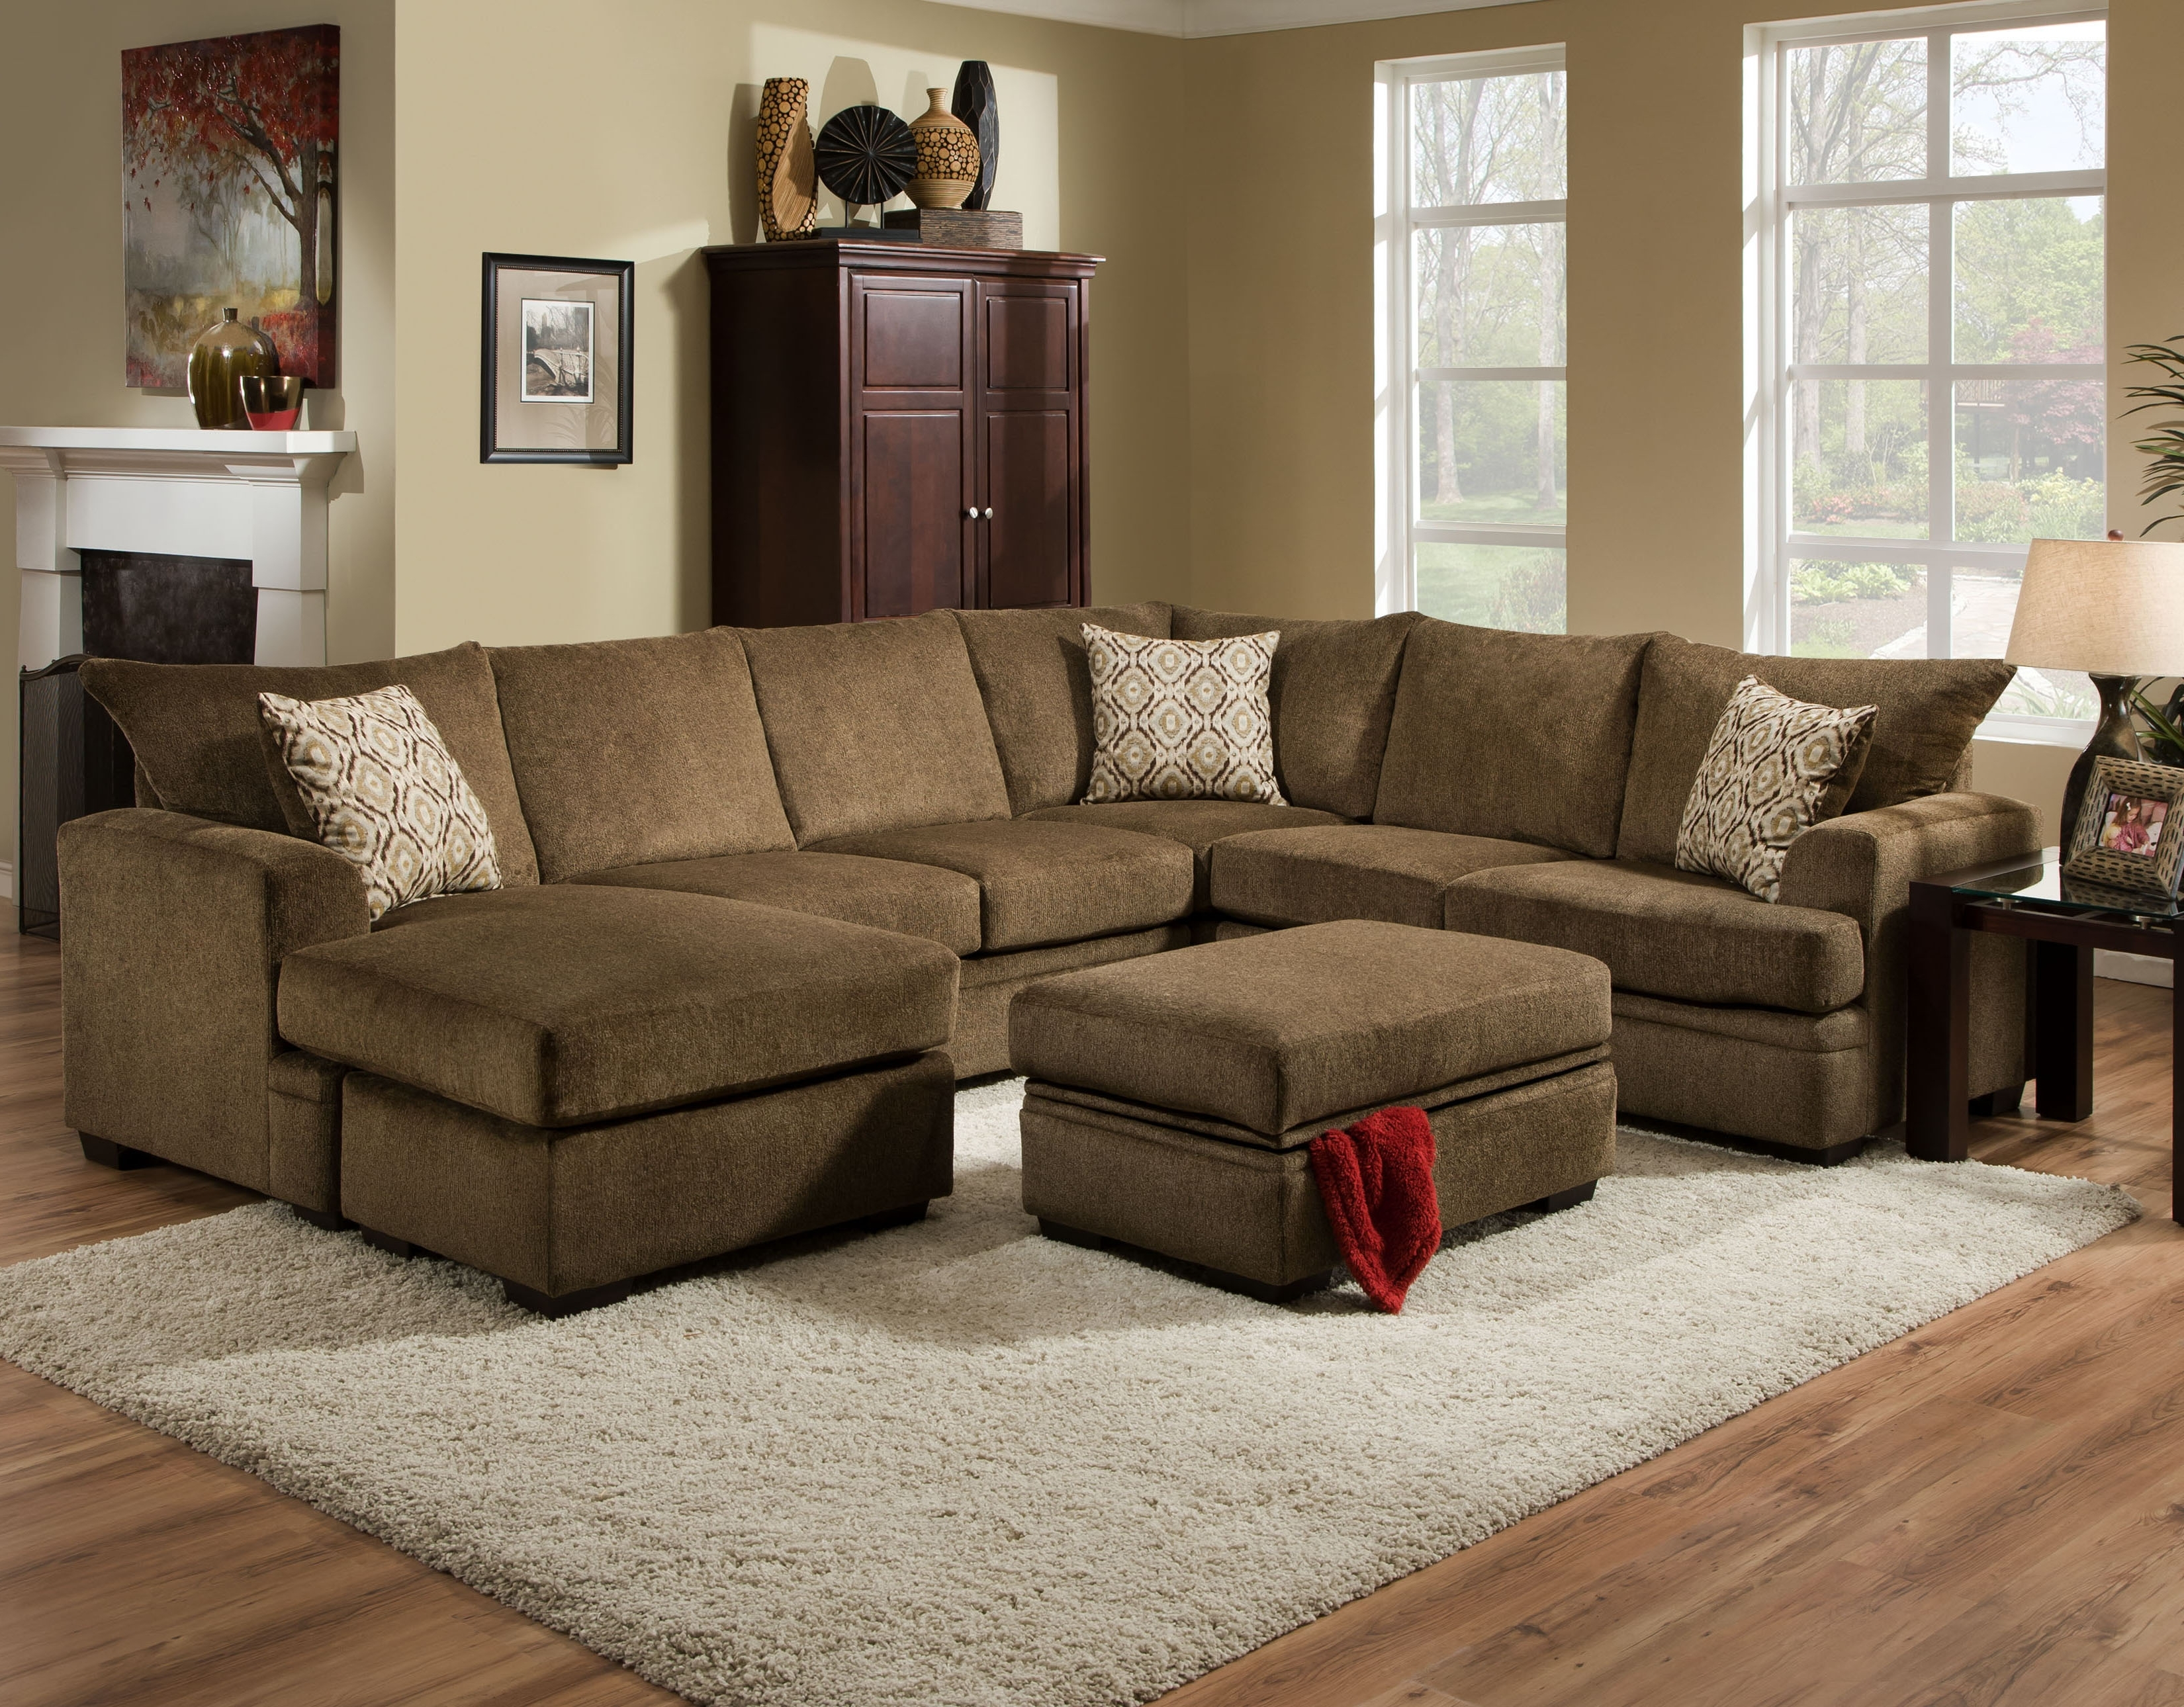 Newest Janesville Wi Sectional Sofas Throughout Living Room – Crazy Joe's Best Deal Furniture (View 3 of 15)